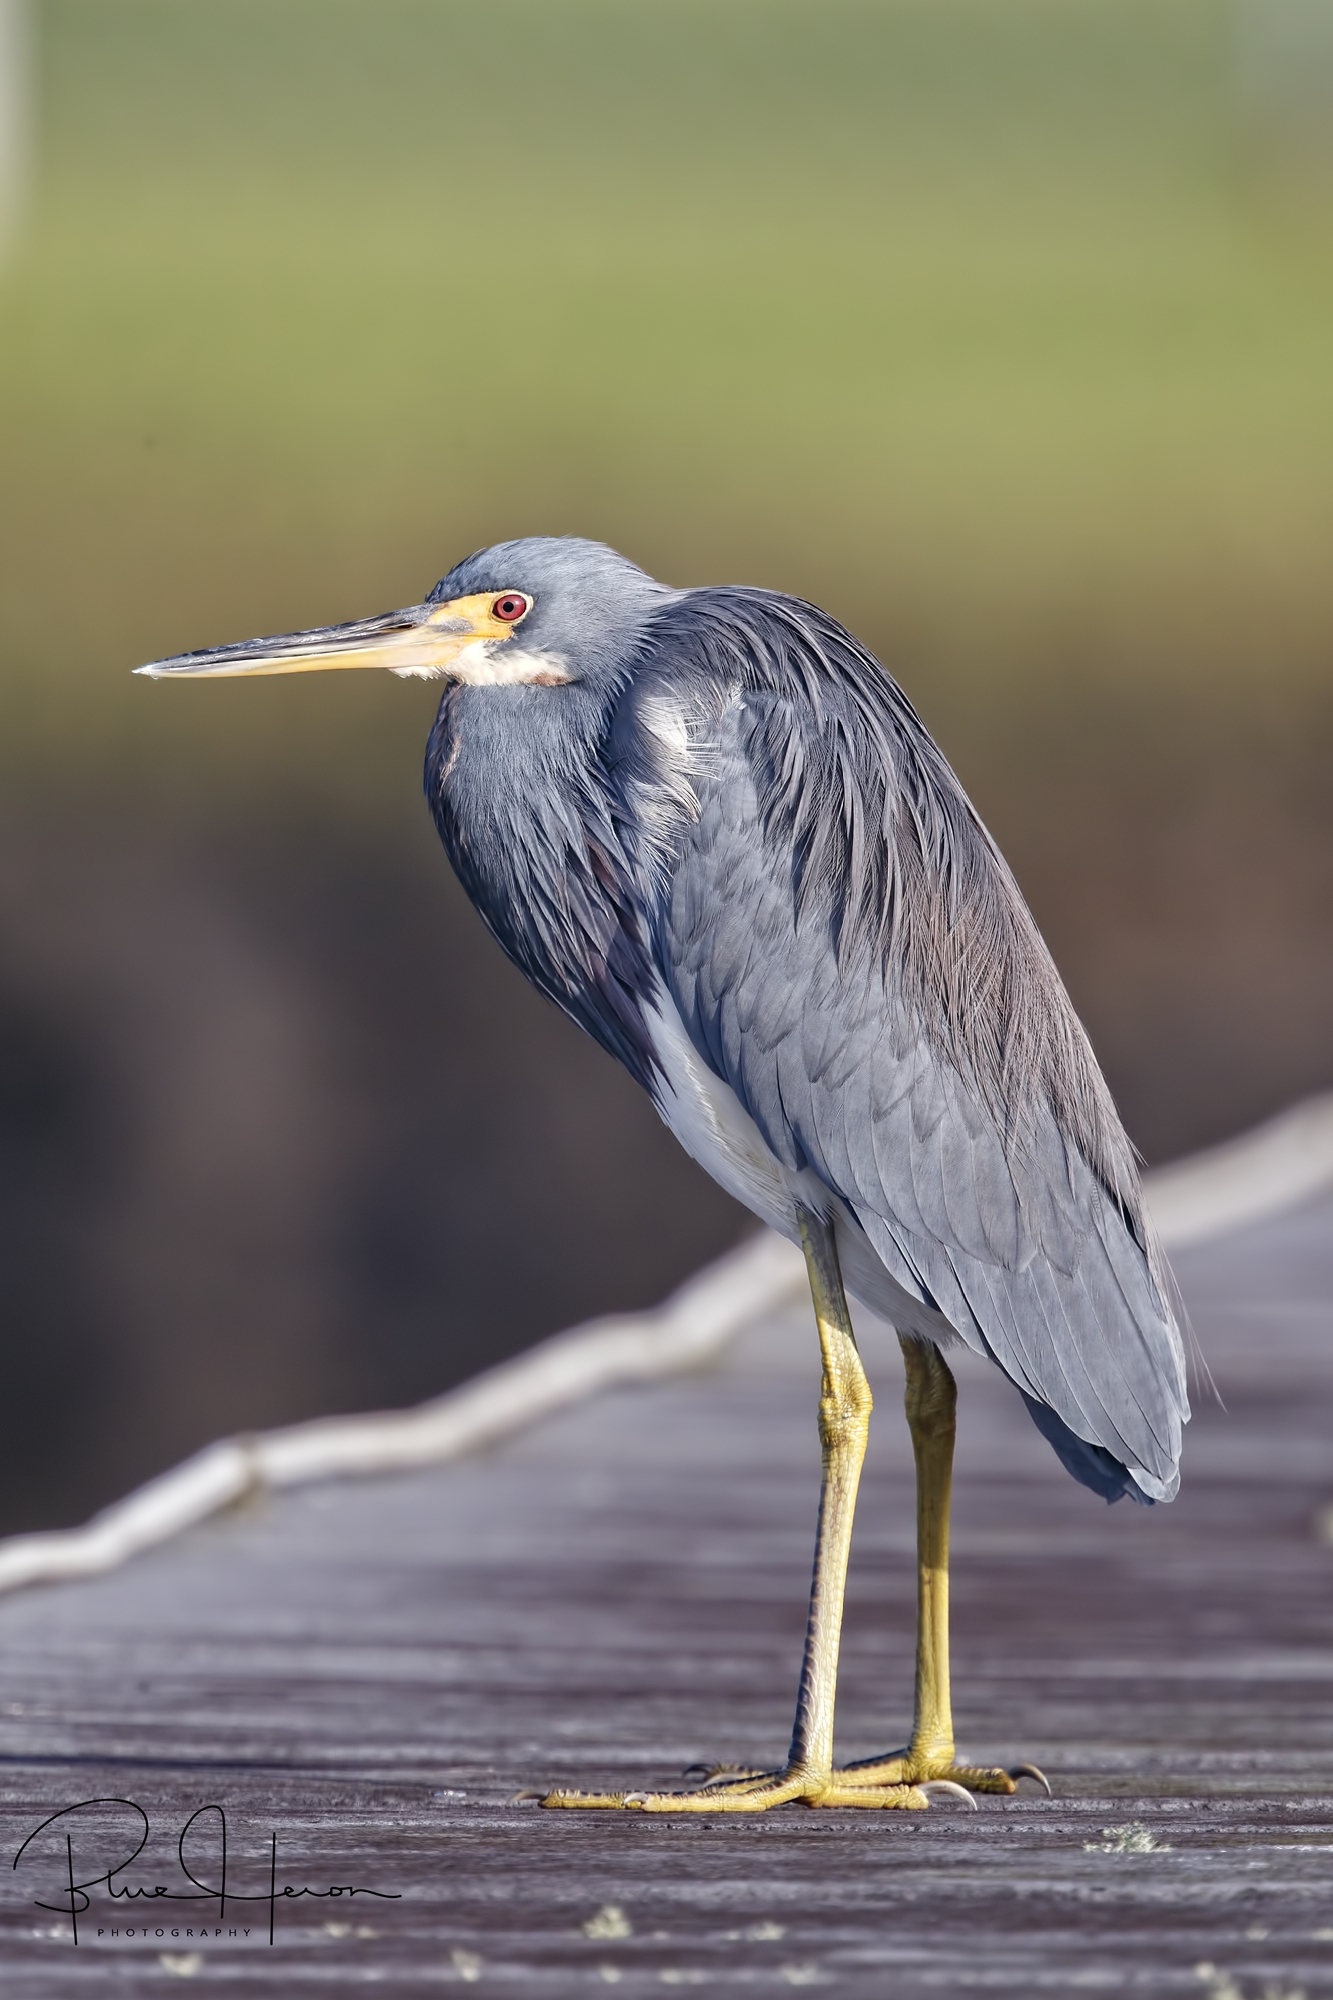 The Tricolored and Little Blue Herons land beside me on the dock. Did you see that Eagle Mr Doohicky?